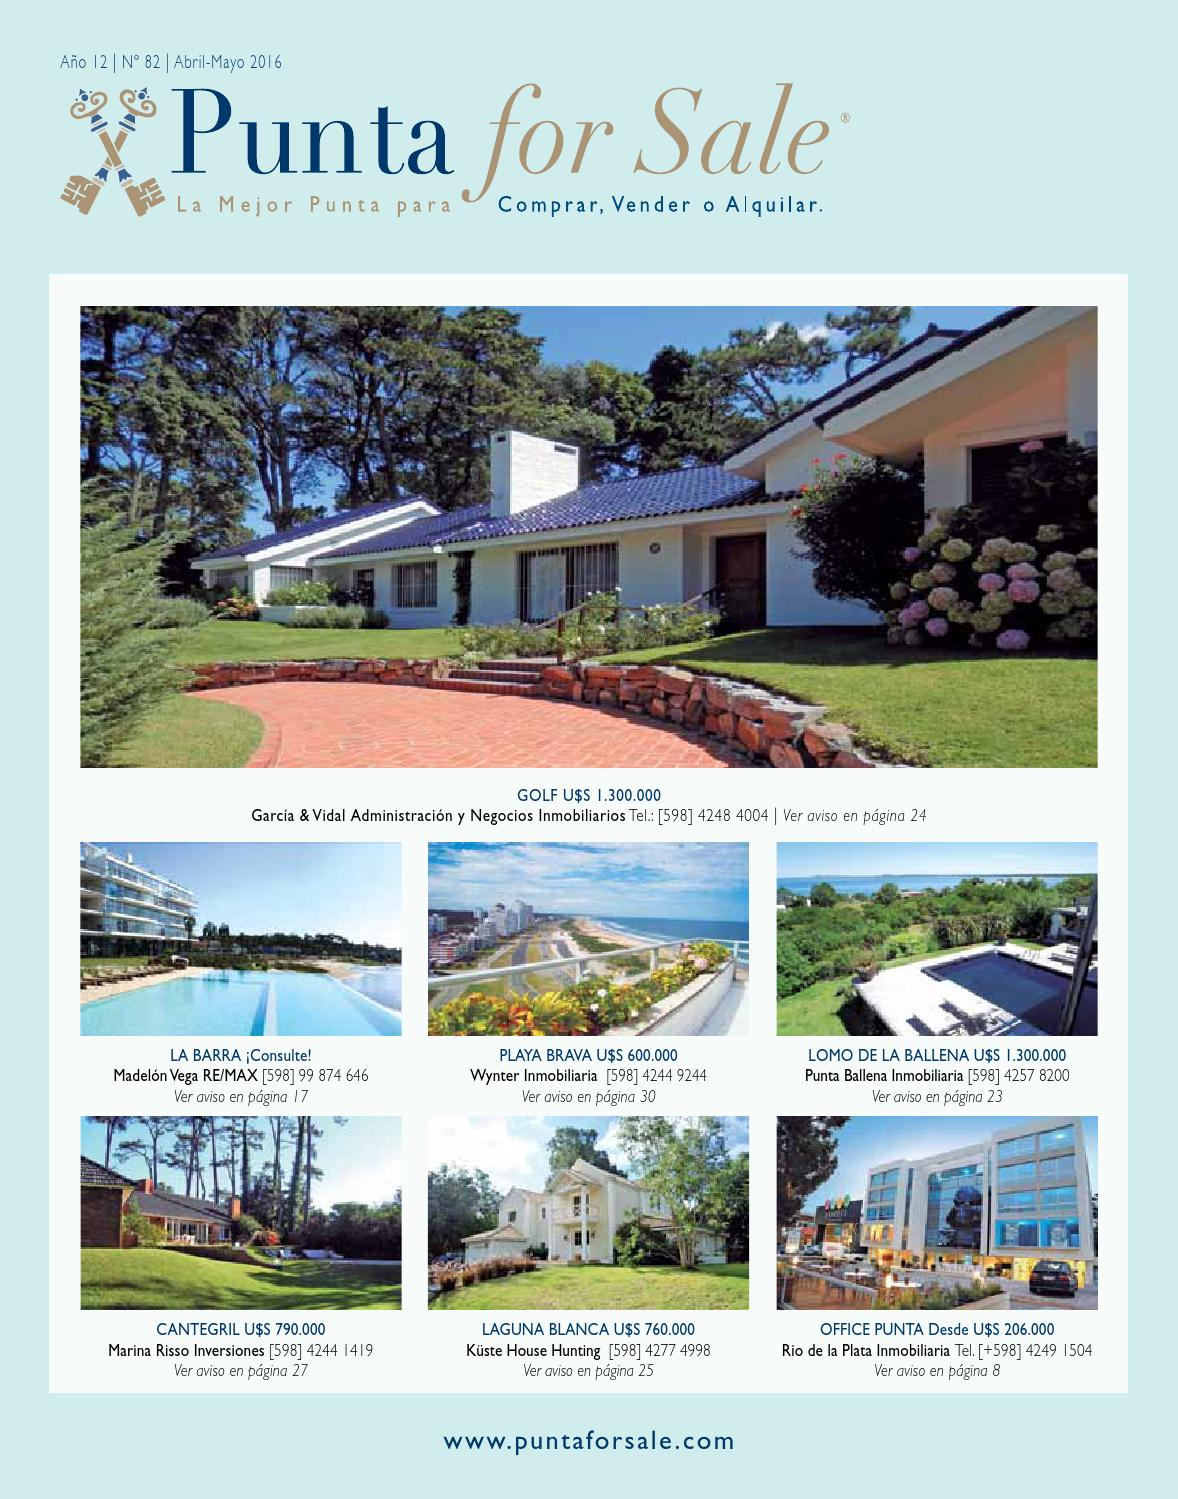 Revista de Real Estate Punta For Sale, edición #82 Abril-Mayo 2016